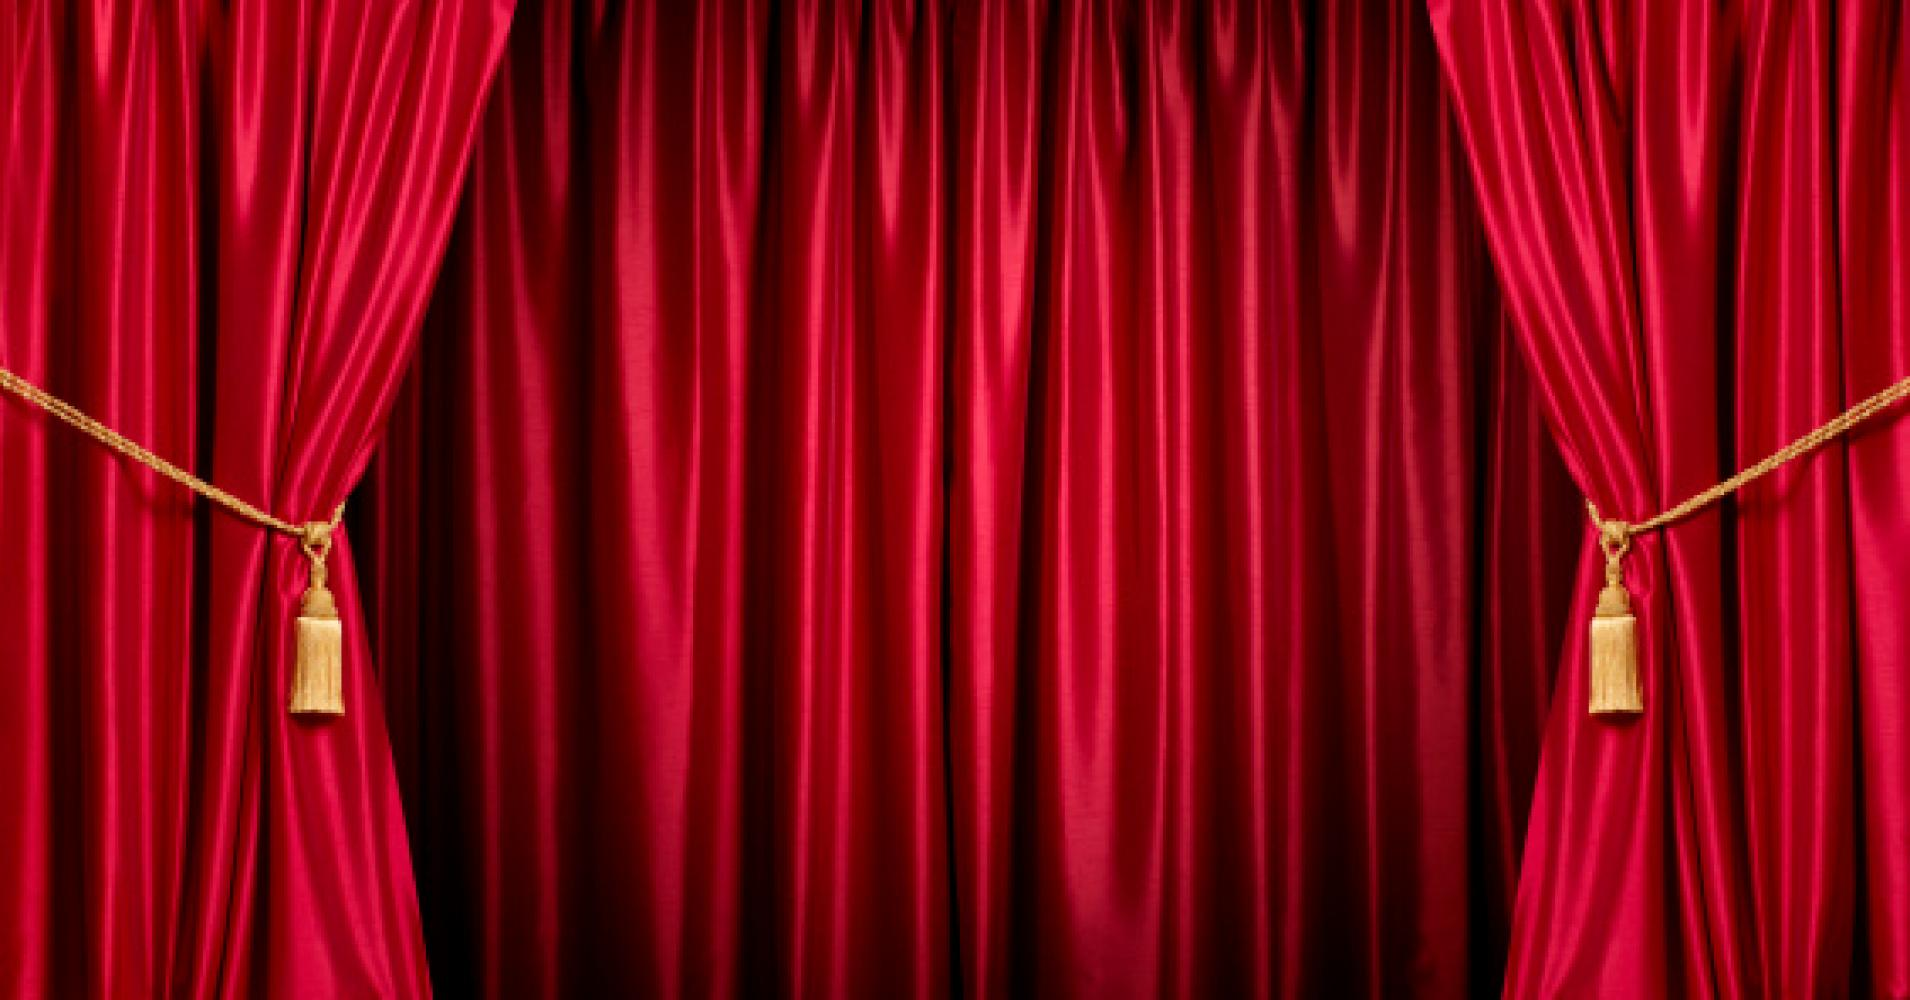 Curtain clipart curtain raiser  Investment Rising on Theater